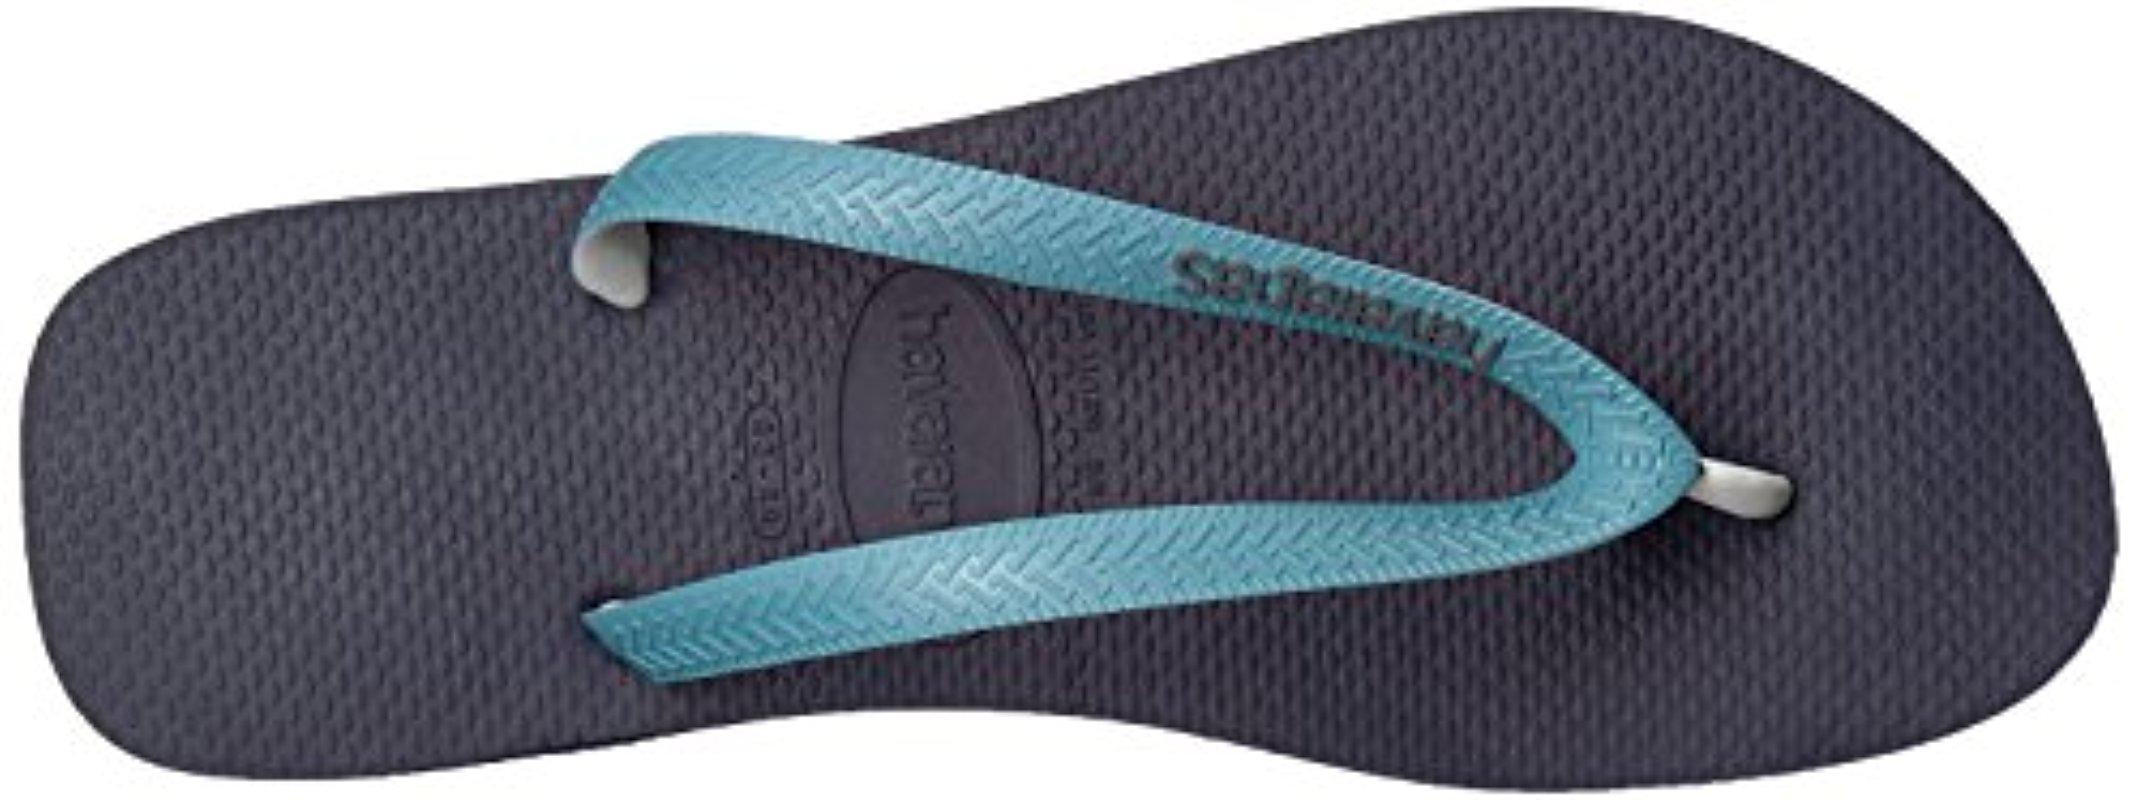 6be149f8bee9 Lyst - Havaianas Top Mix Sandal Navy Mineral Blue in Blue for Men